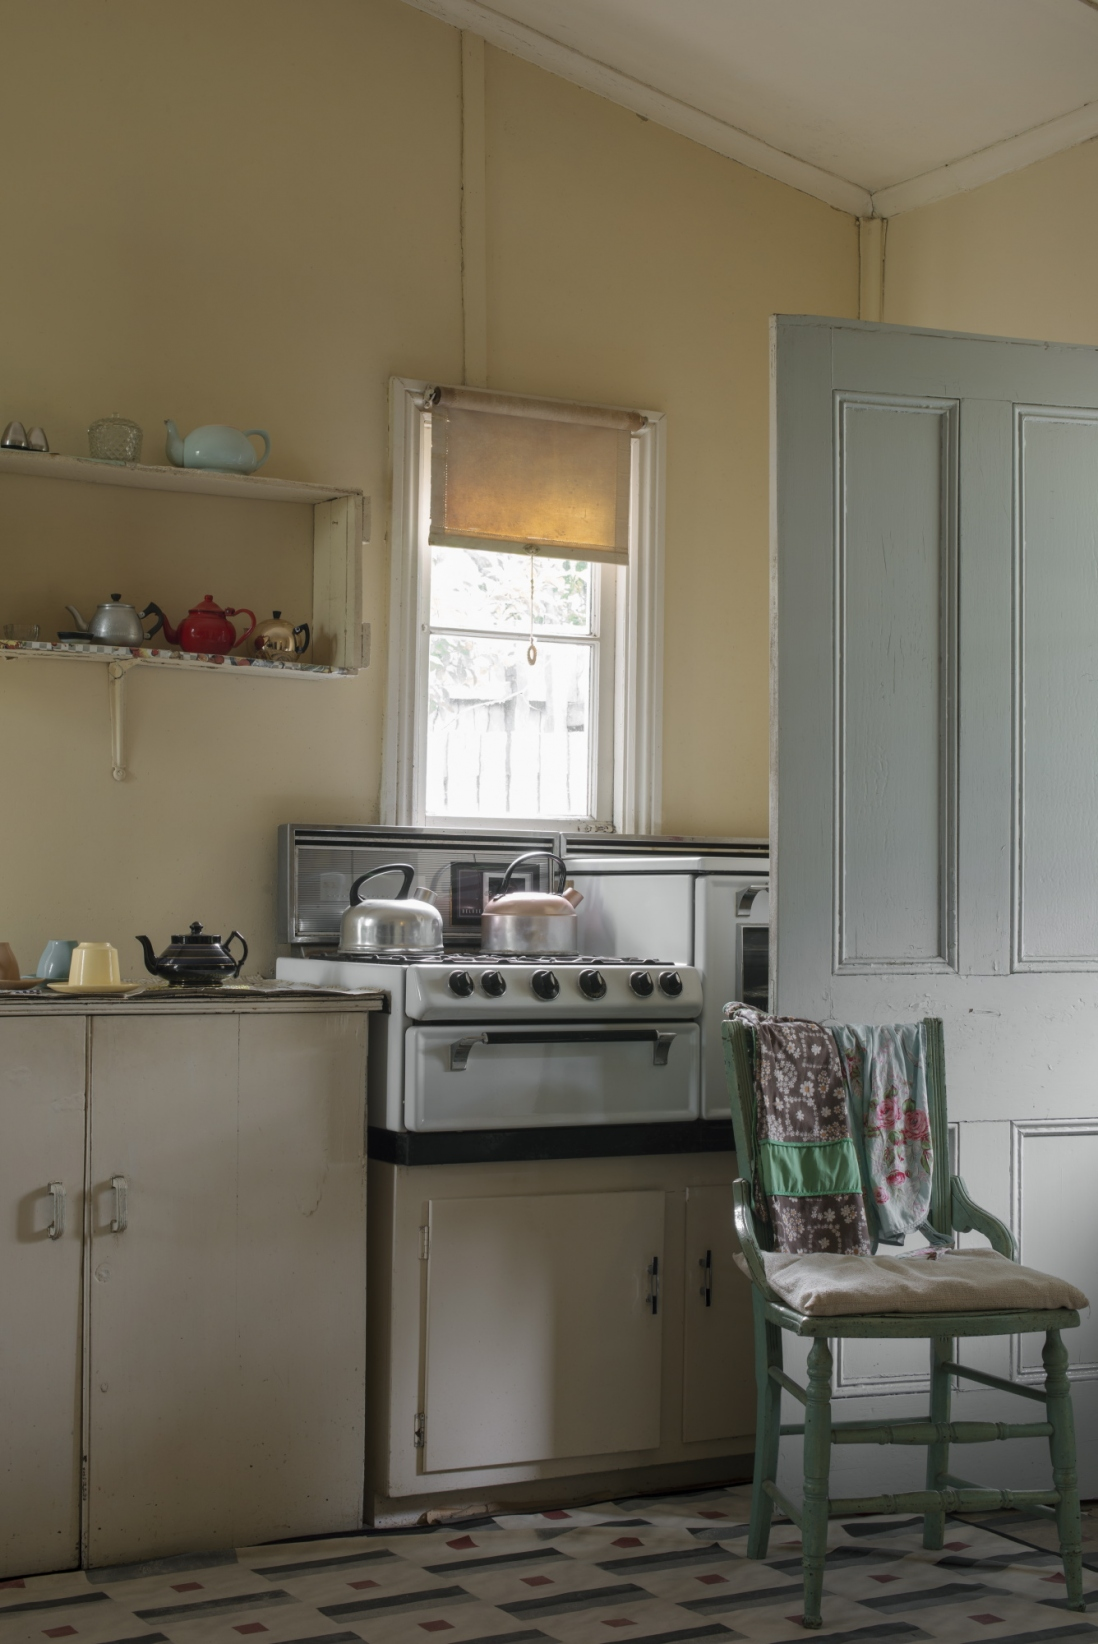 Interior of kitchen with backlit window over stove and open doorway to right.